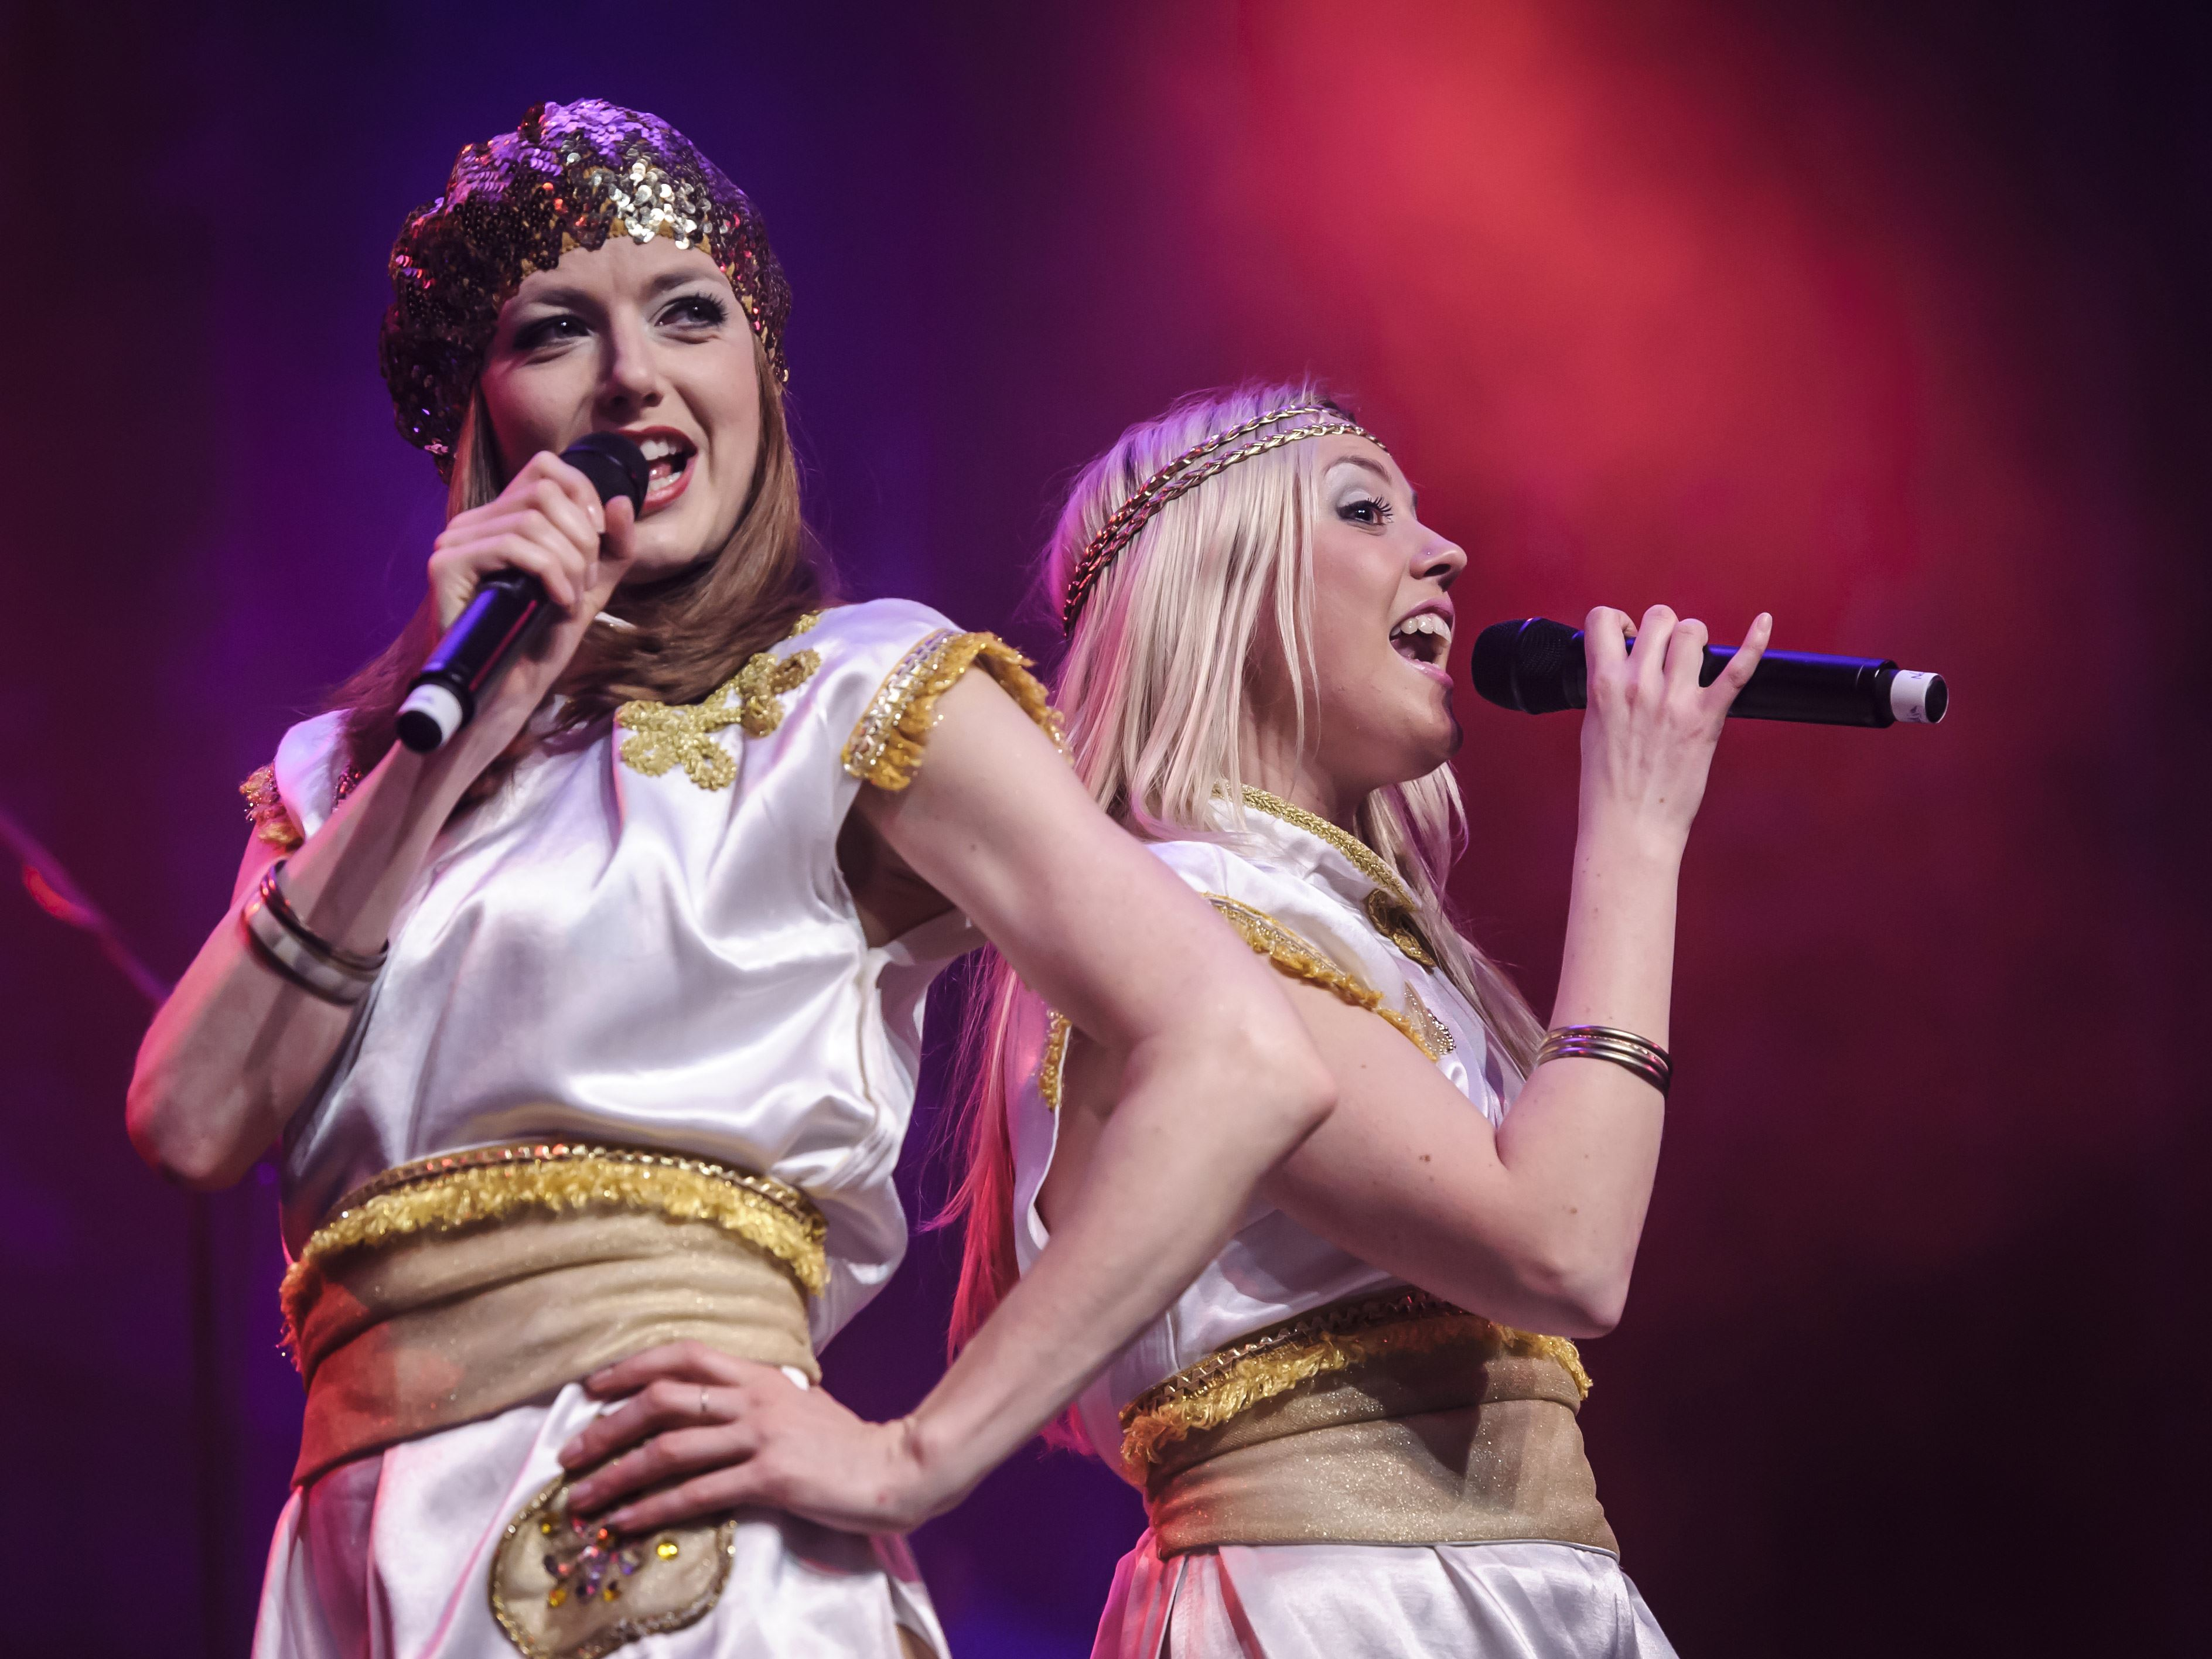 Absolut ABBA Tribute